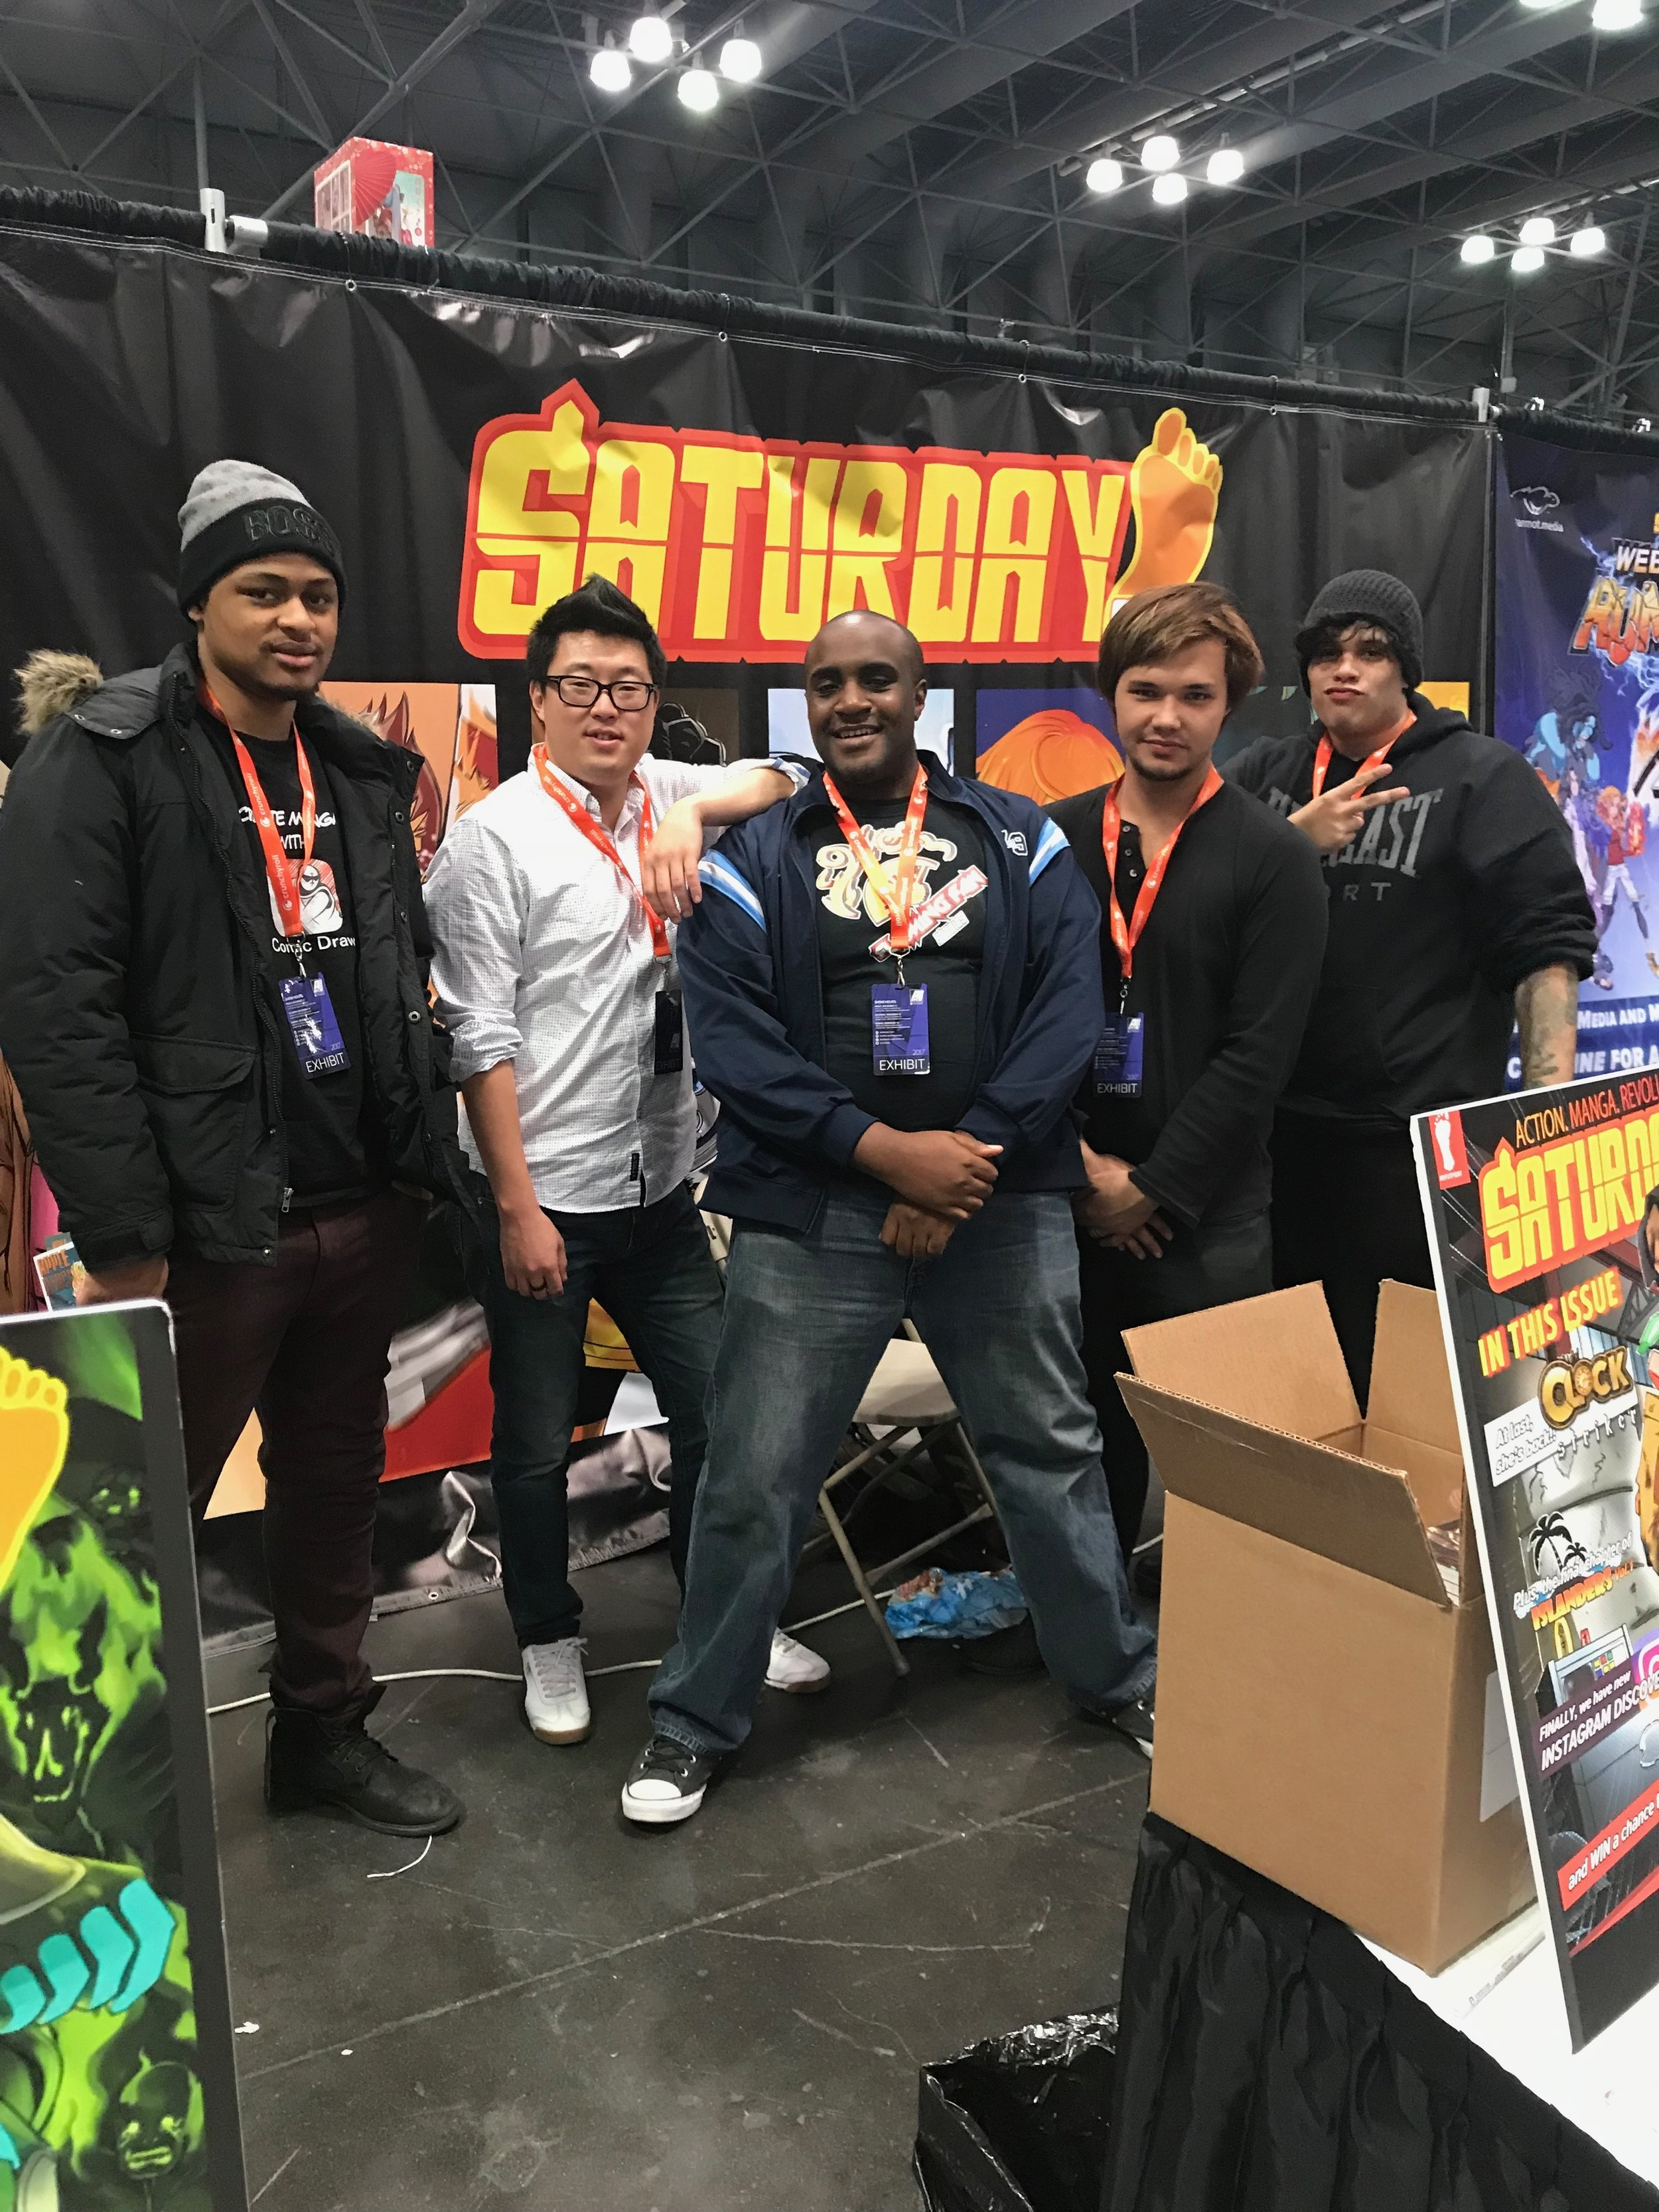 Saturday AM's crew was the coolest -- Whyt Manga, David Yoon, Raymond Brown, Jack Sherwin, and Jaime Molina!